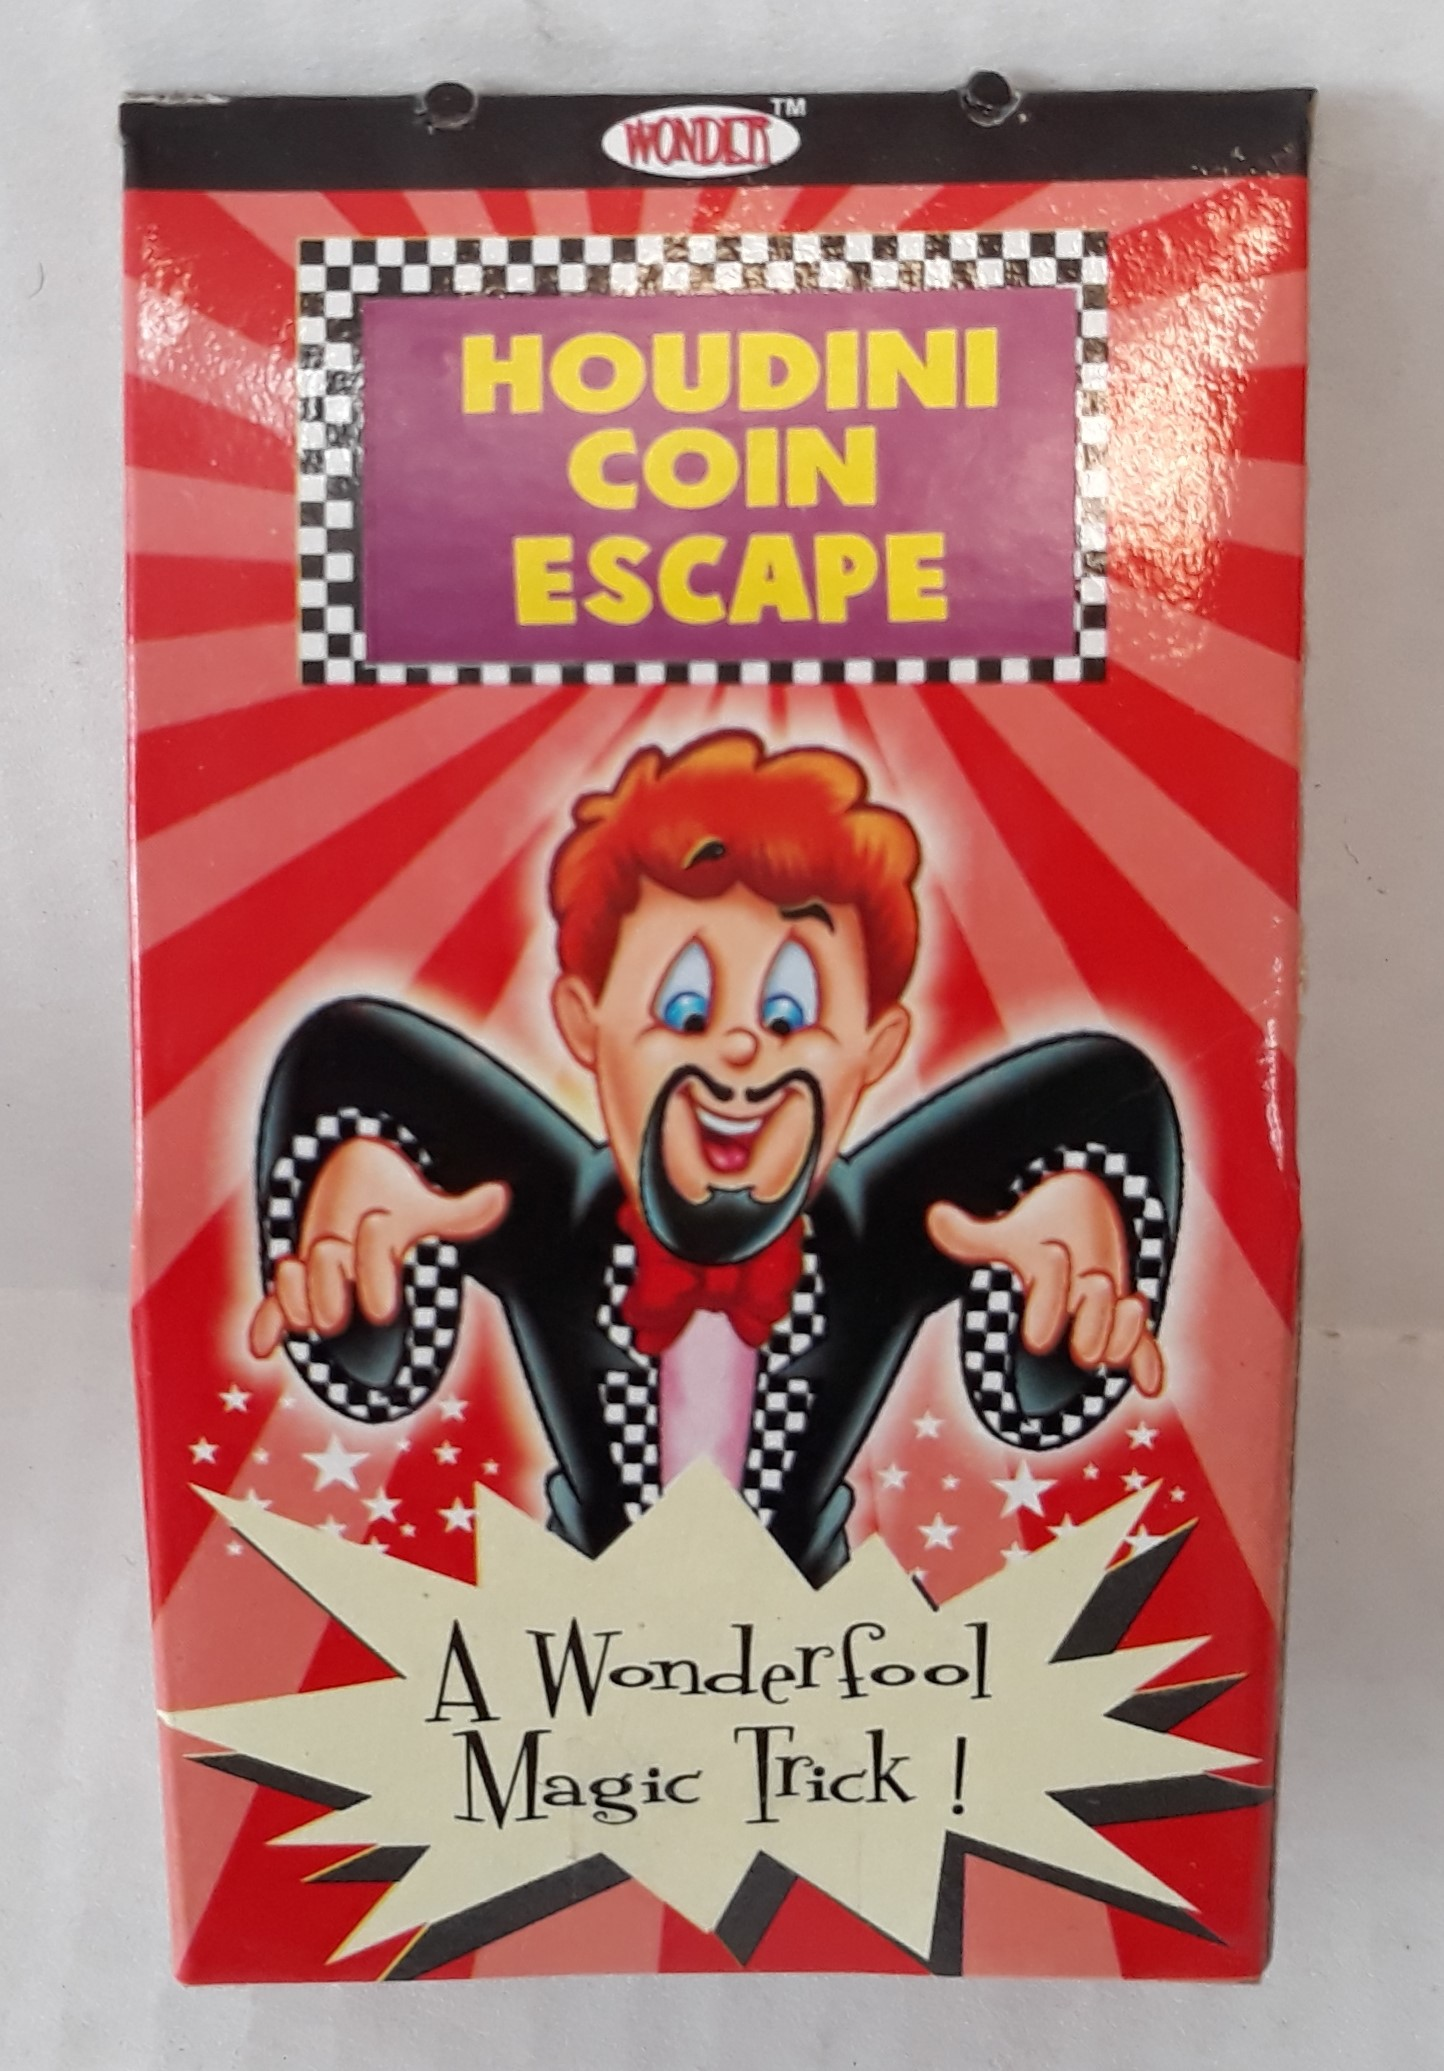 Houdini Coin Escape (Wonder)